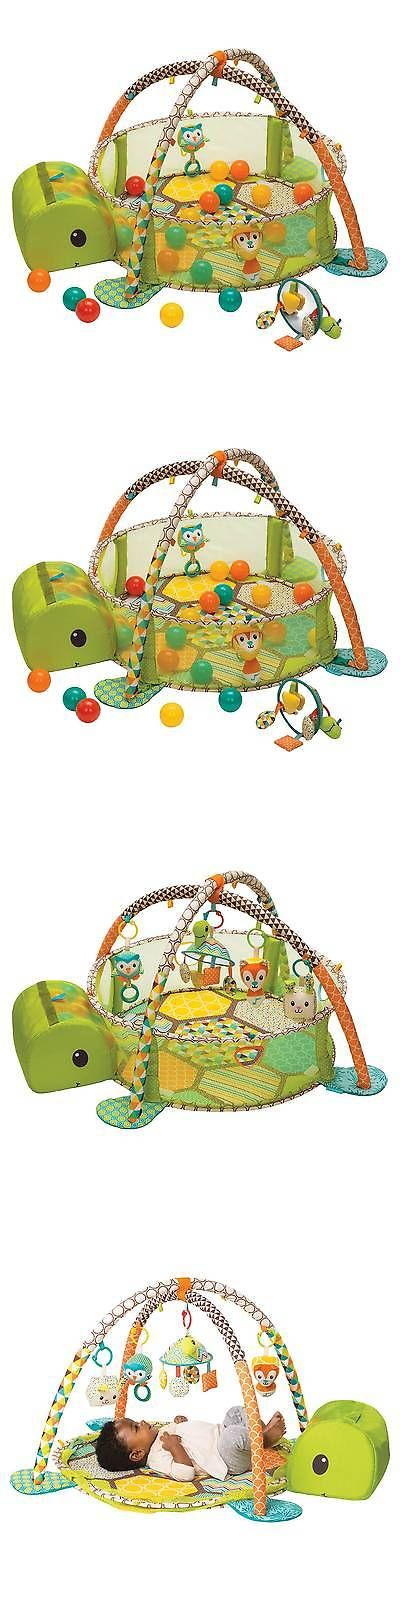 Baby Gyms and Play Mats 19069: Infantino Go Gaga Activity Gym And Shape Sorting Ball Pit -> BUY IT NOW ONLY: $59.99 on eBay!